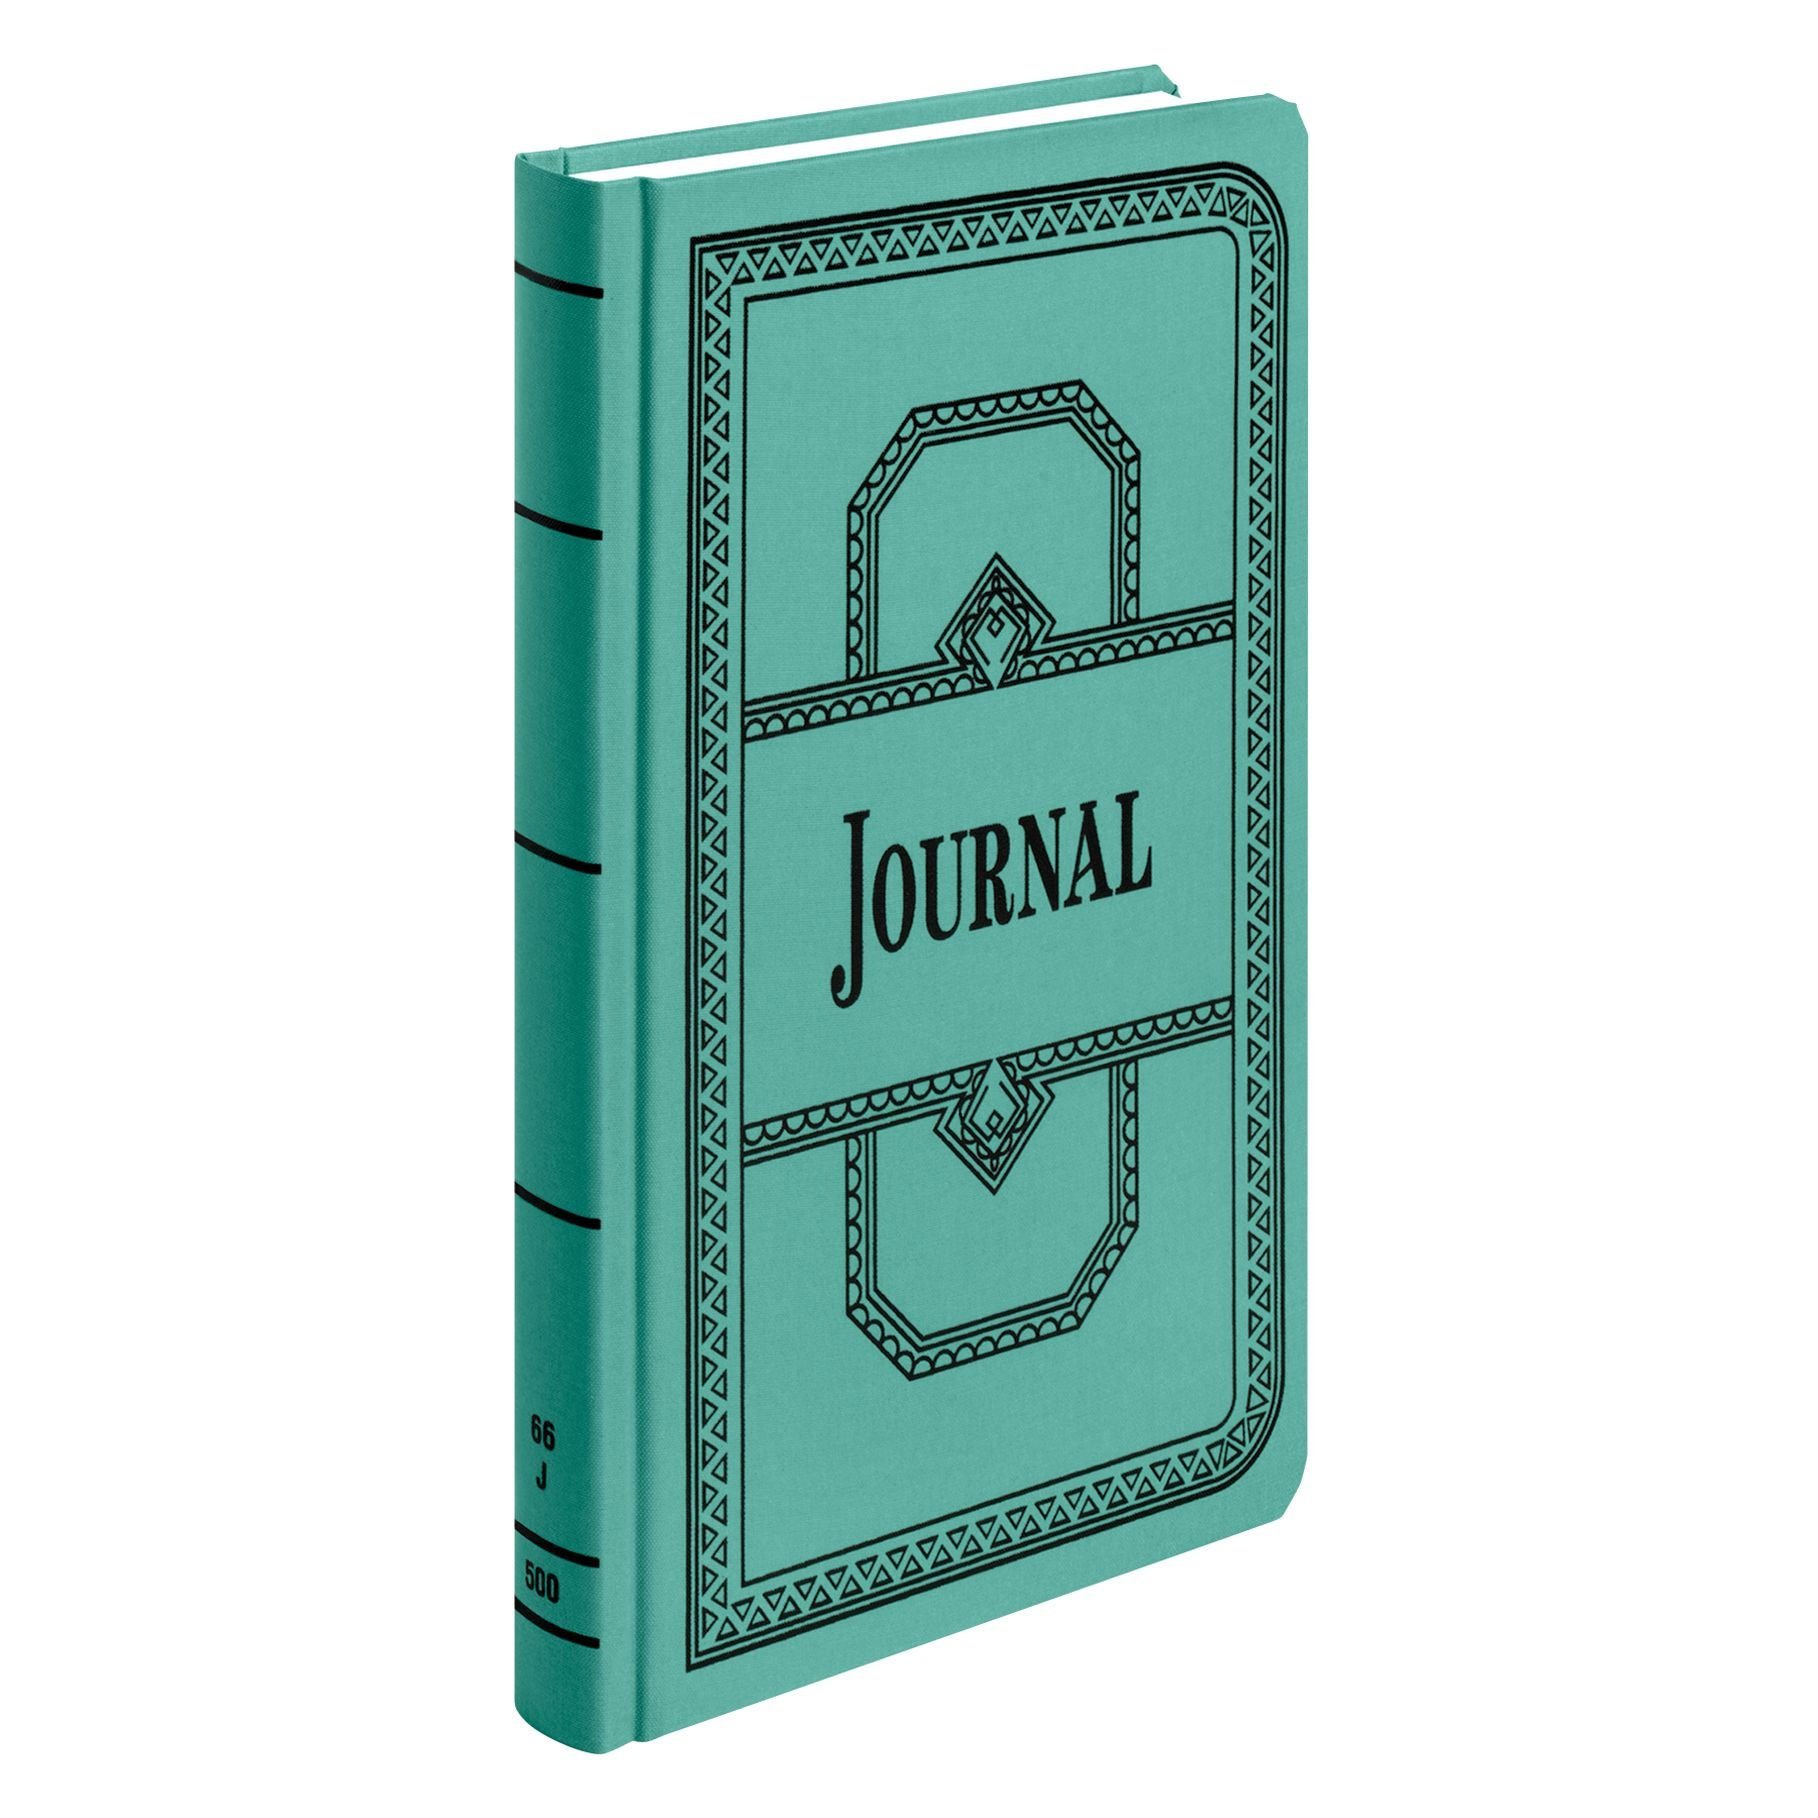 Boorum & Pease 66 Series Account Book, Journal Ruled, Green, 500 Pages, 12-1/8'' x 7-5/8'' (66-500-J)